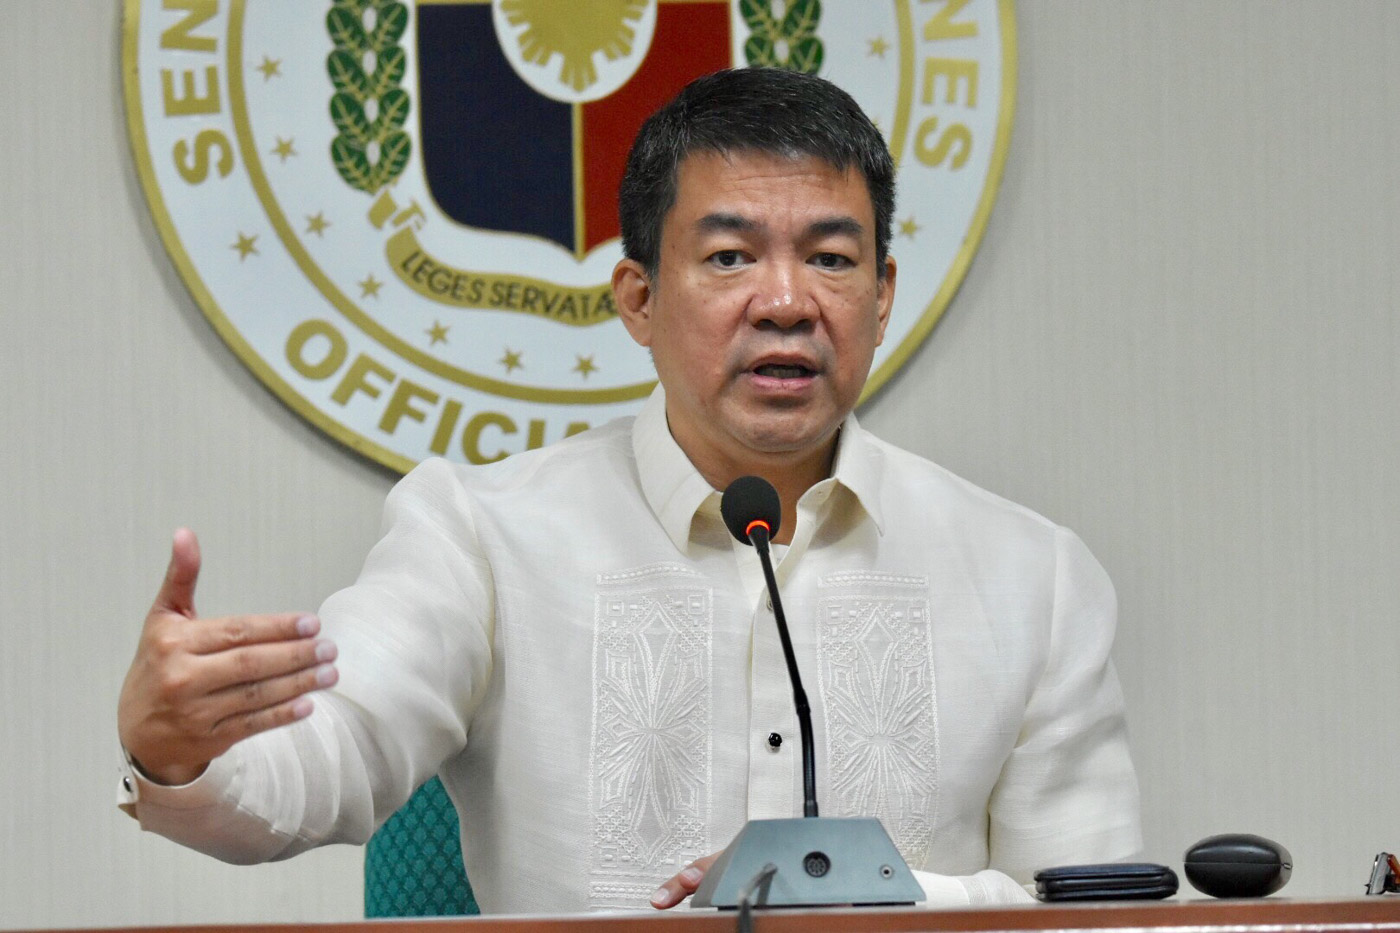 Makati Med denounces Pimentel's 'irresponsible, reckless' protocol ...